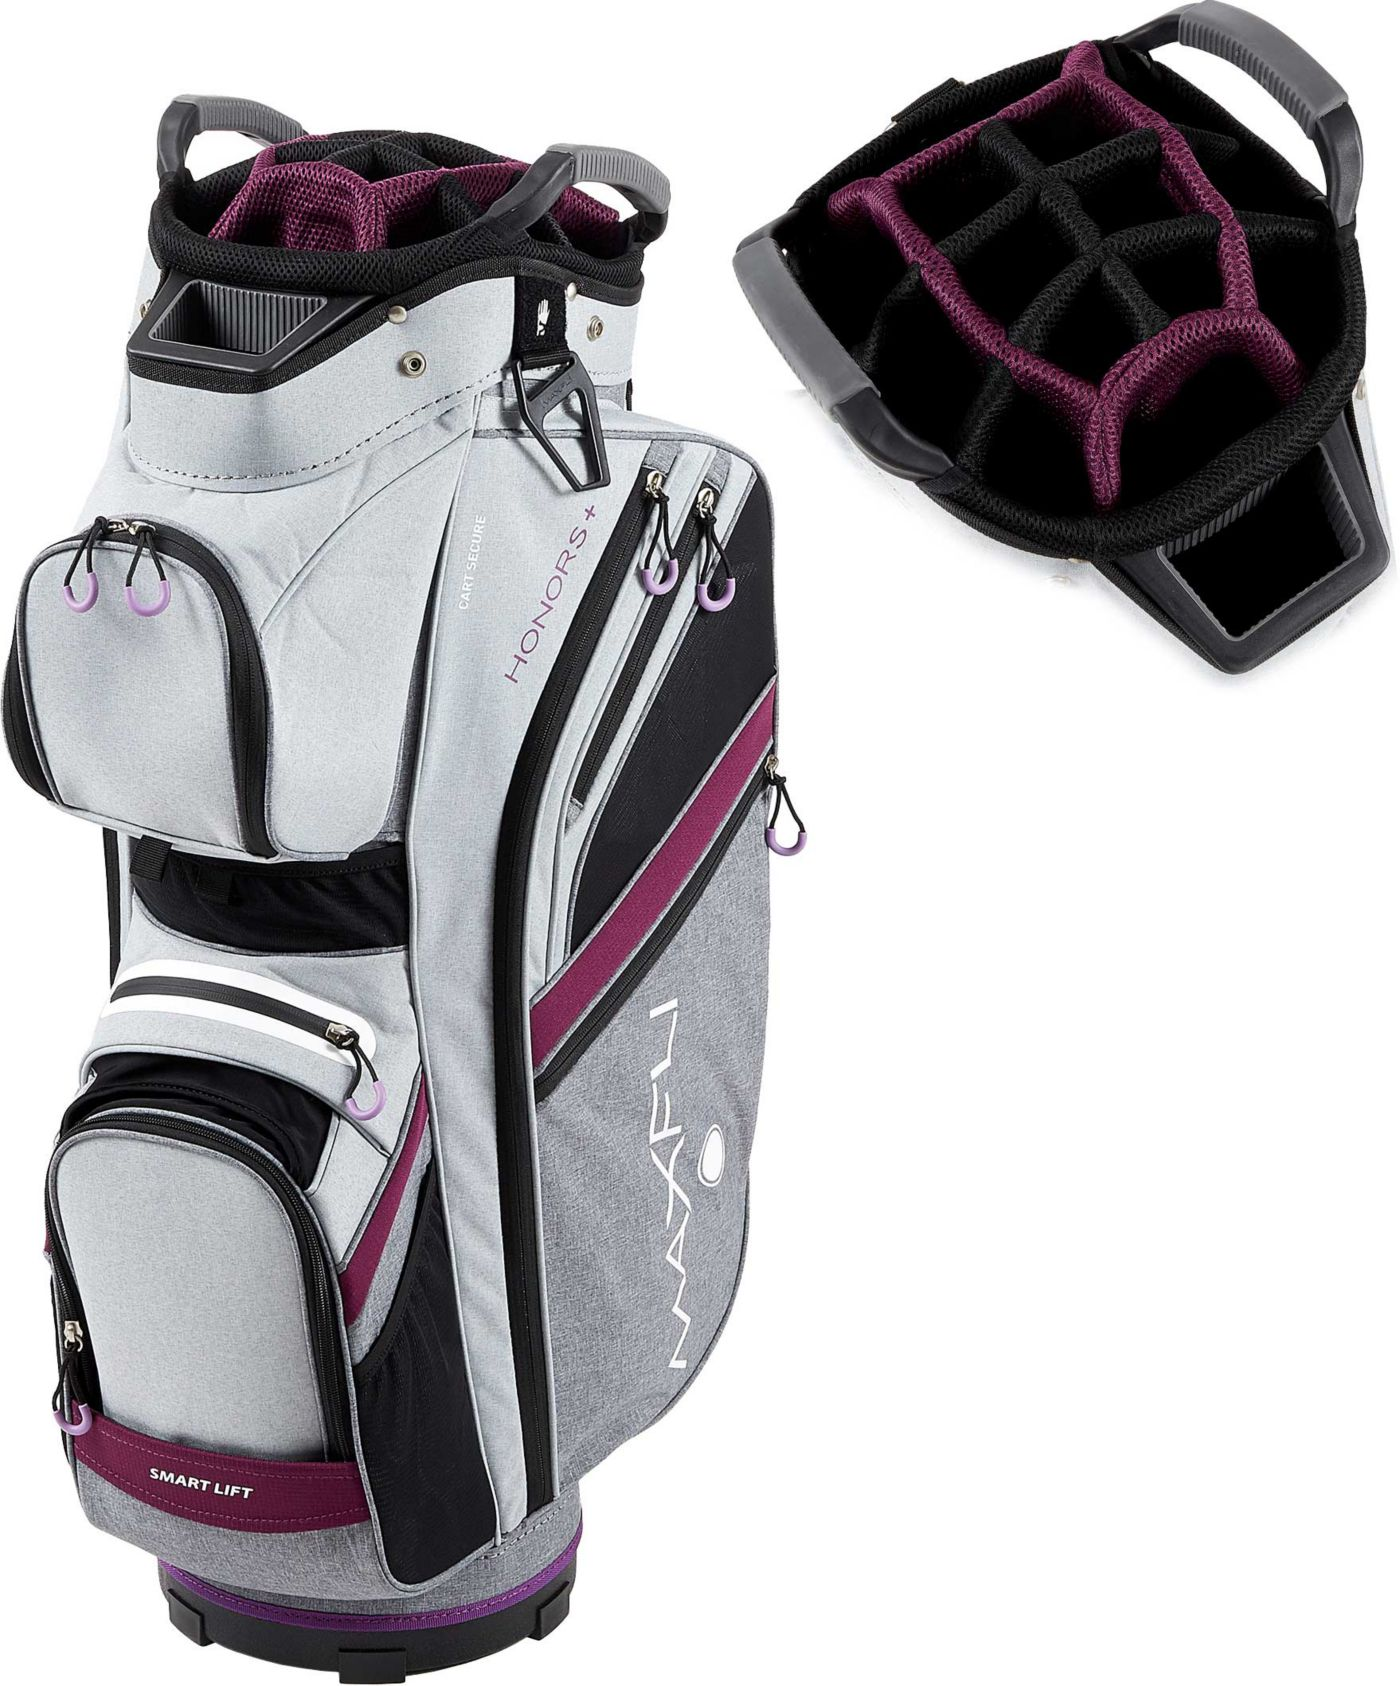 Maxfli Women's 2019 Honors Plus Cart Golf Bag